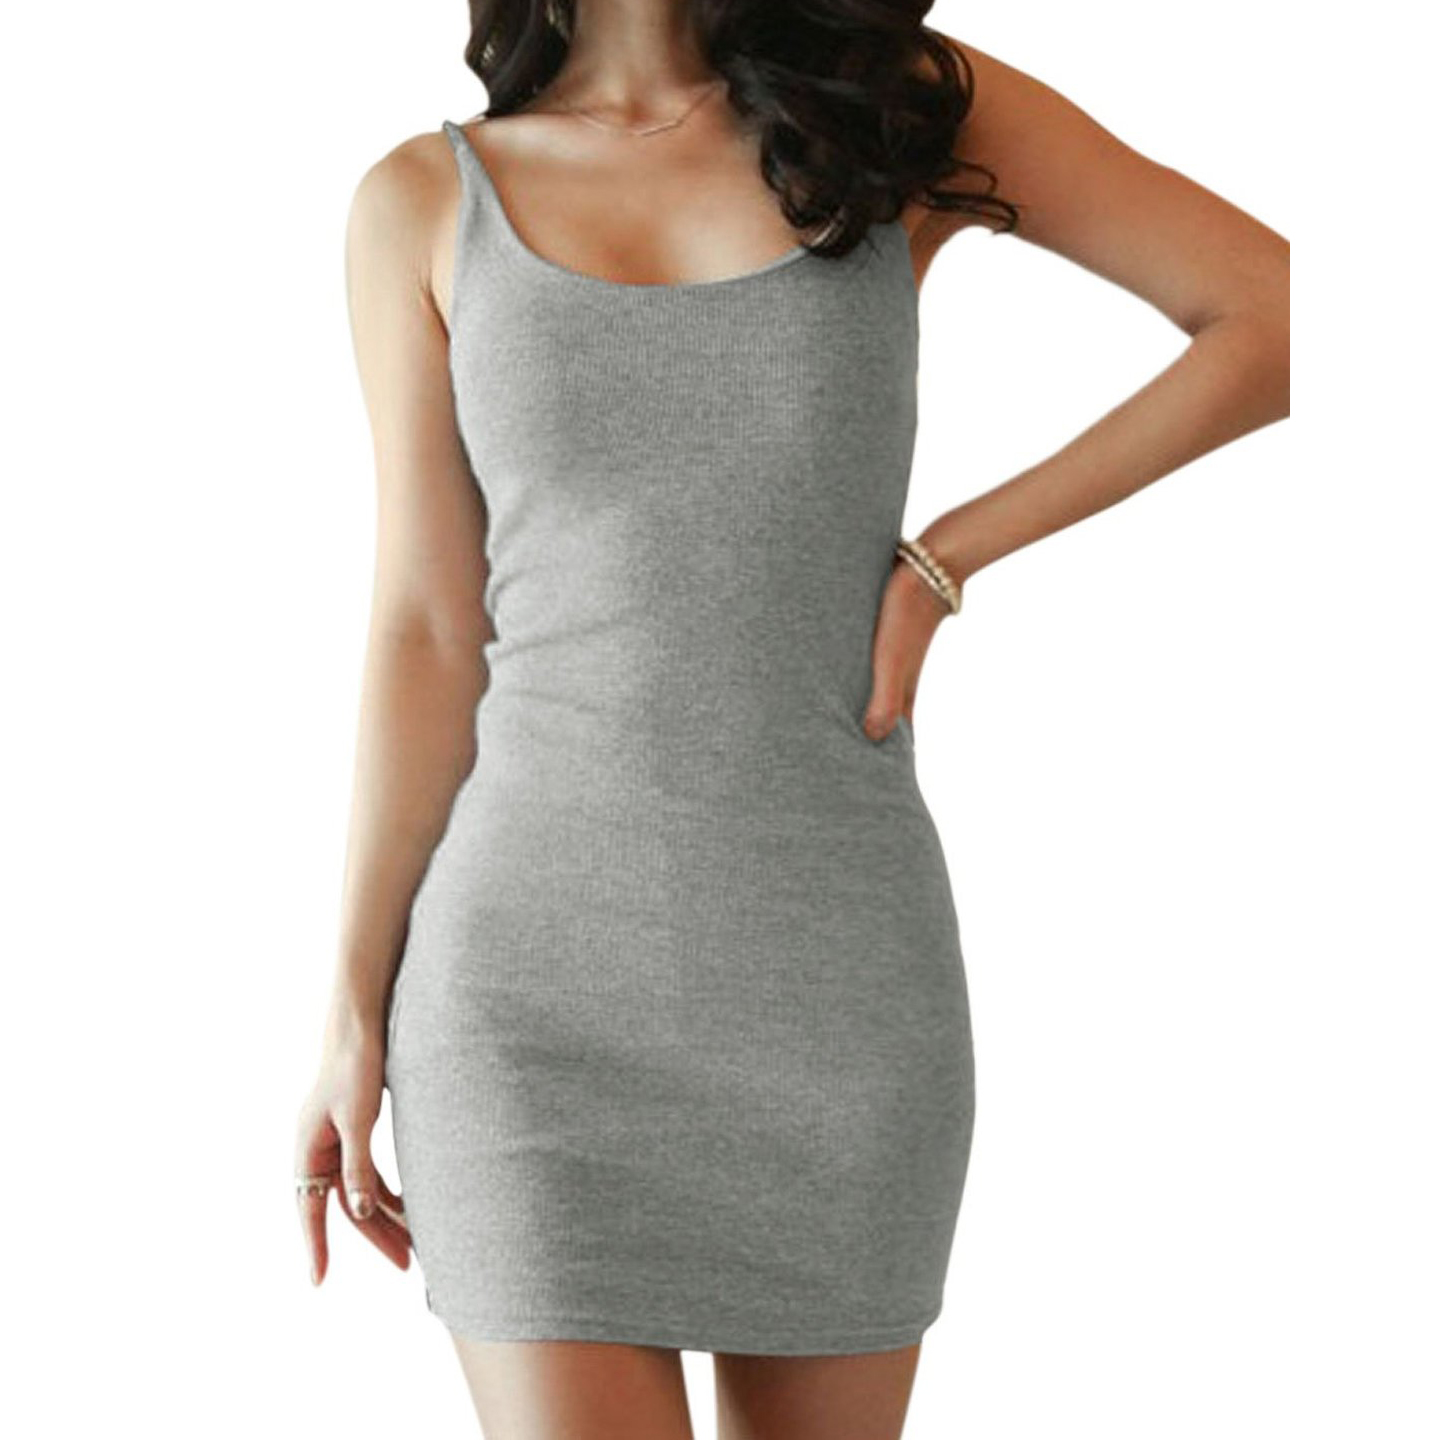 c55fe5840f1a 2017 KSFS Women Scoop Neck Sleeveless Pullover Casual Tank Dresses Black White  Blue Gray-in Dresses from Women s Clothing   Accessories on Aliexpress.com  ...